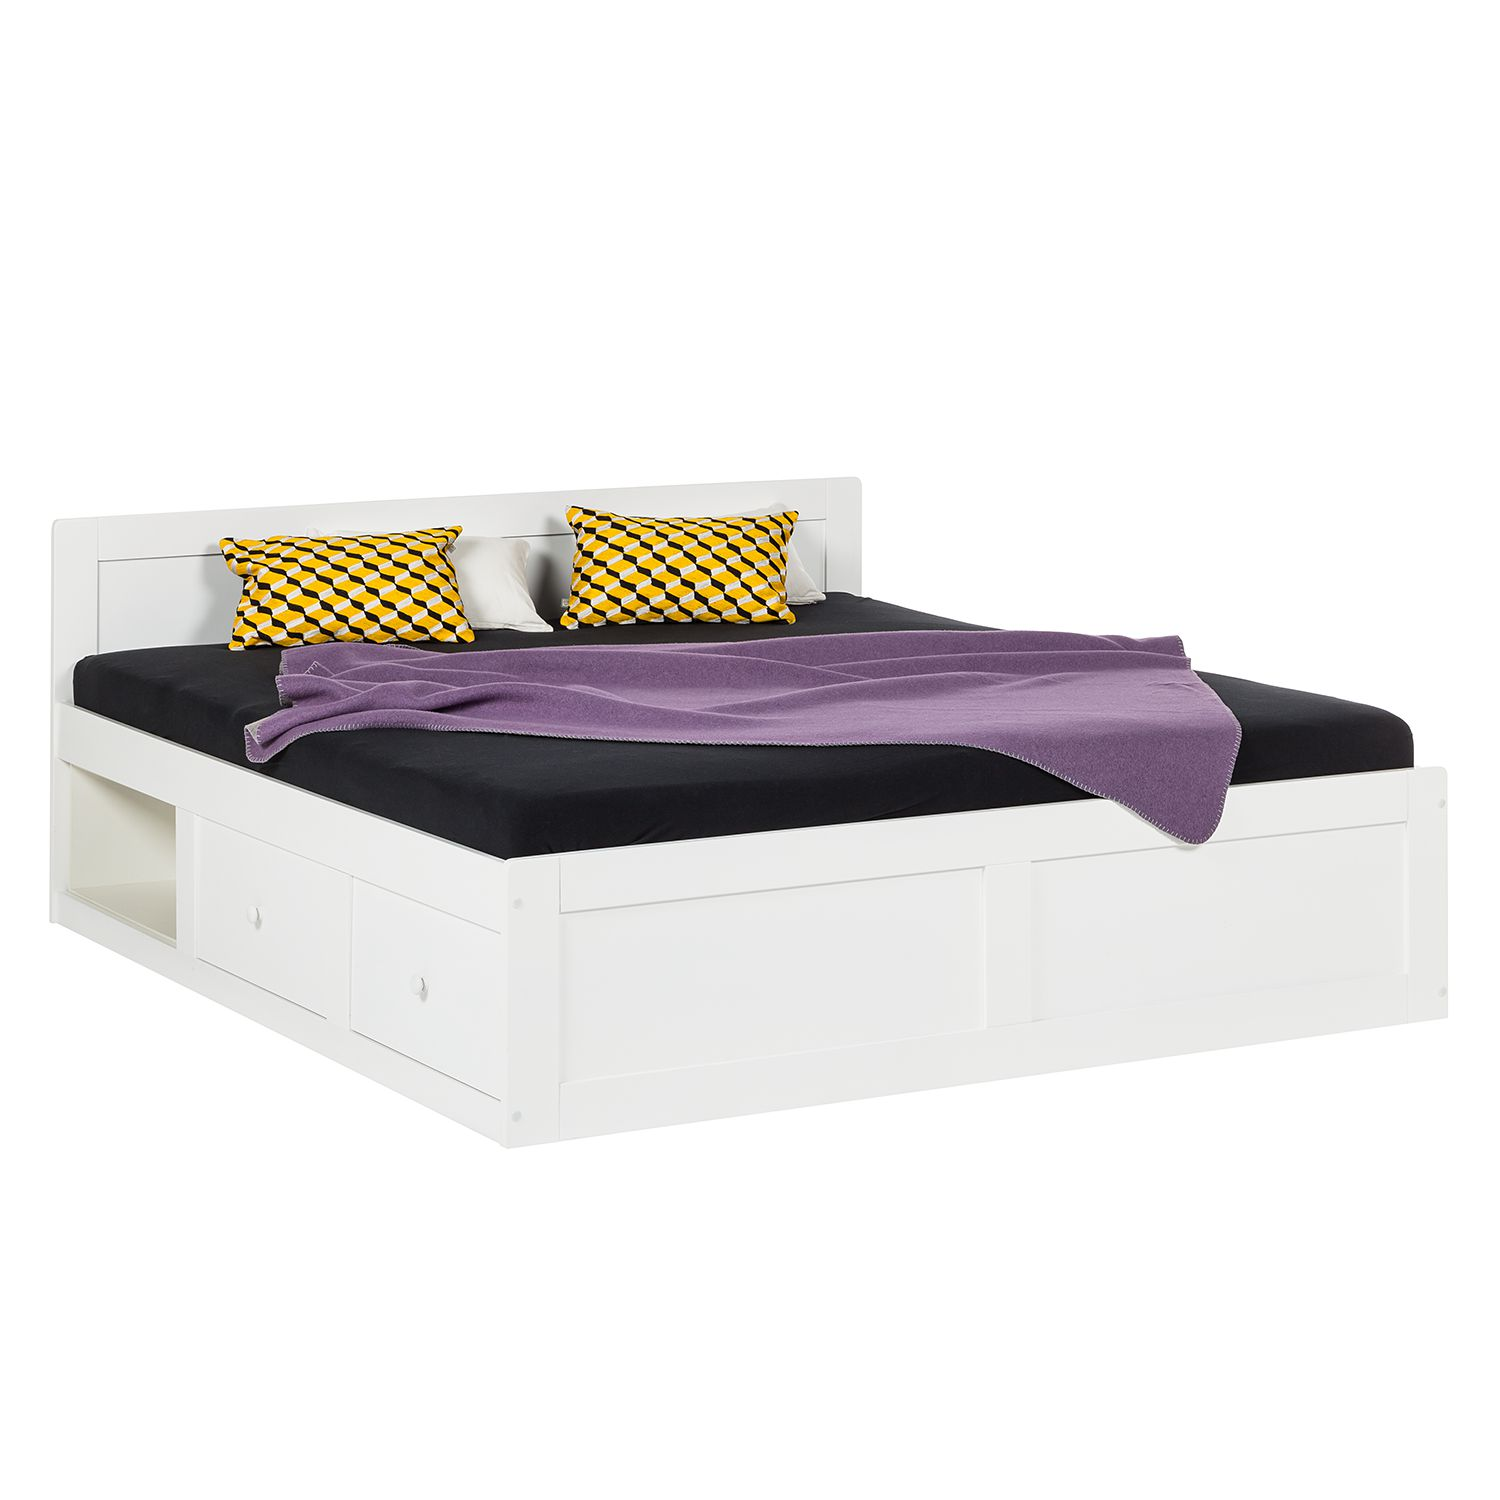 bett lindbom pinie teilmassiv wei 140 x 200cm ebay. Black Bedroom Furniture Sets. Home Design Ideas